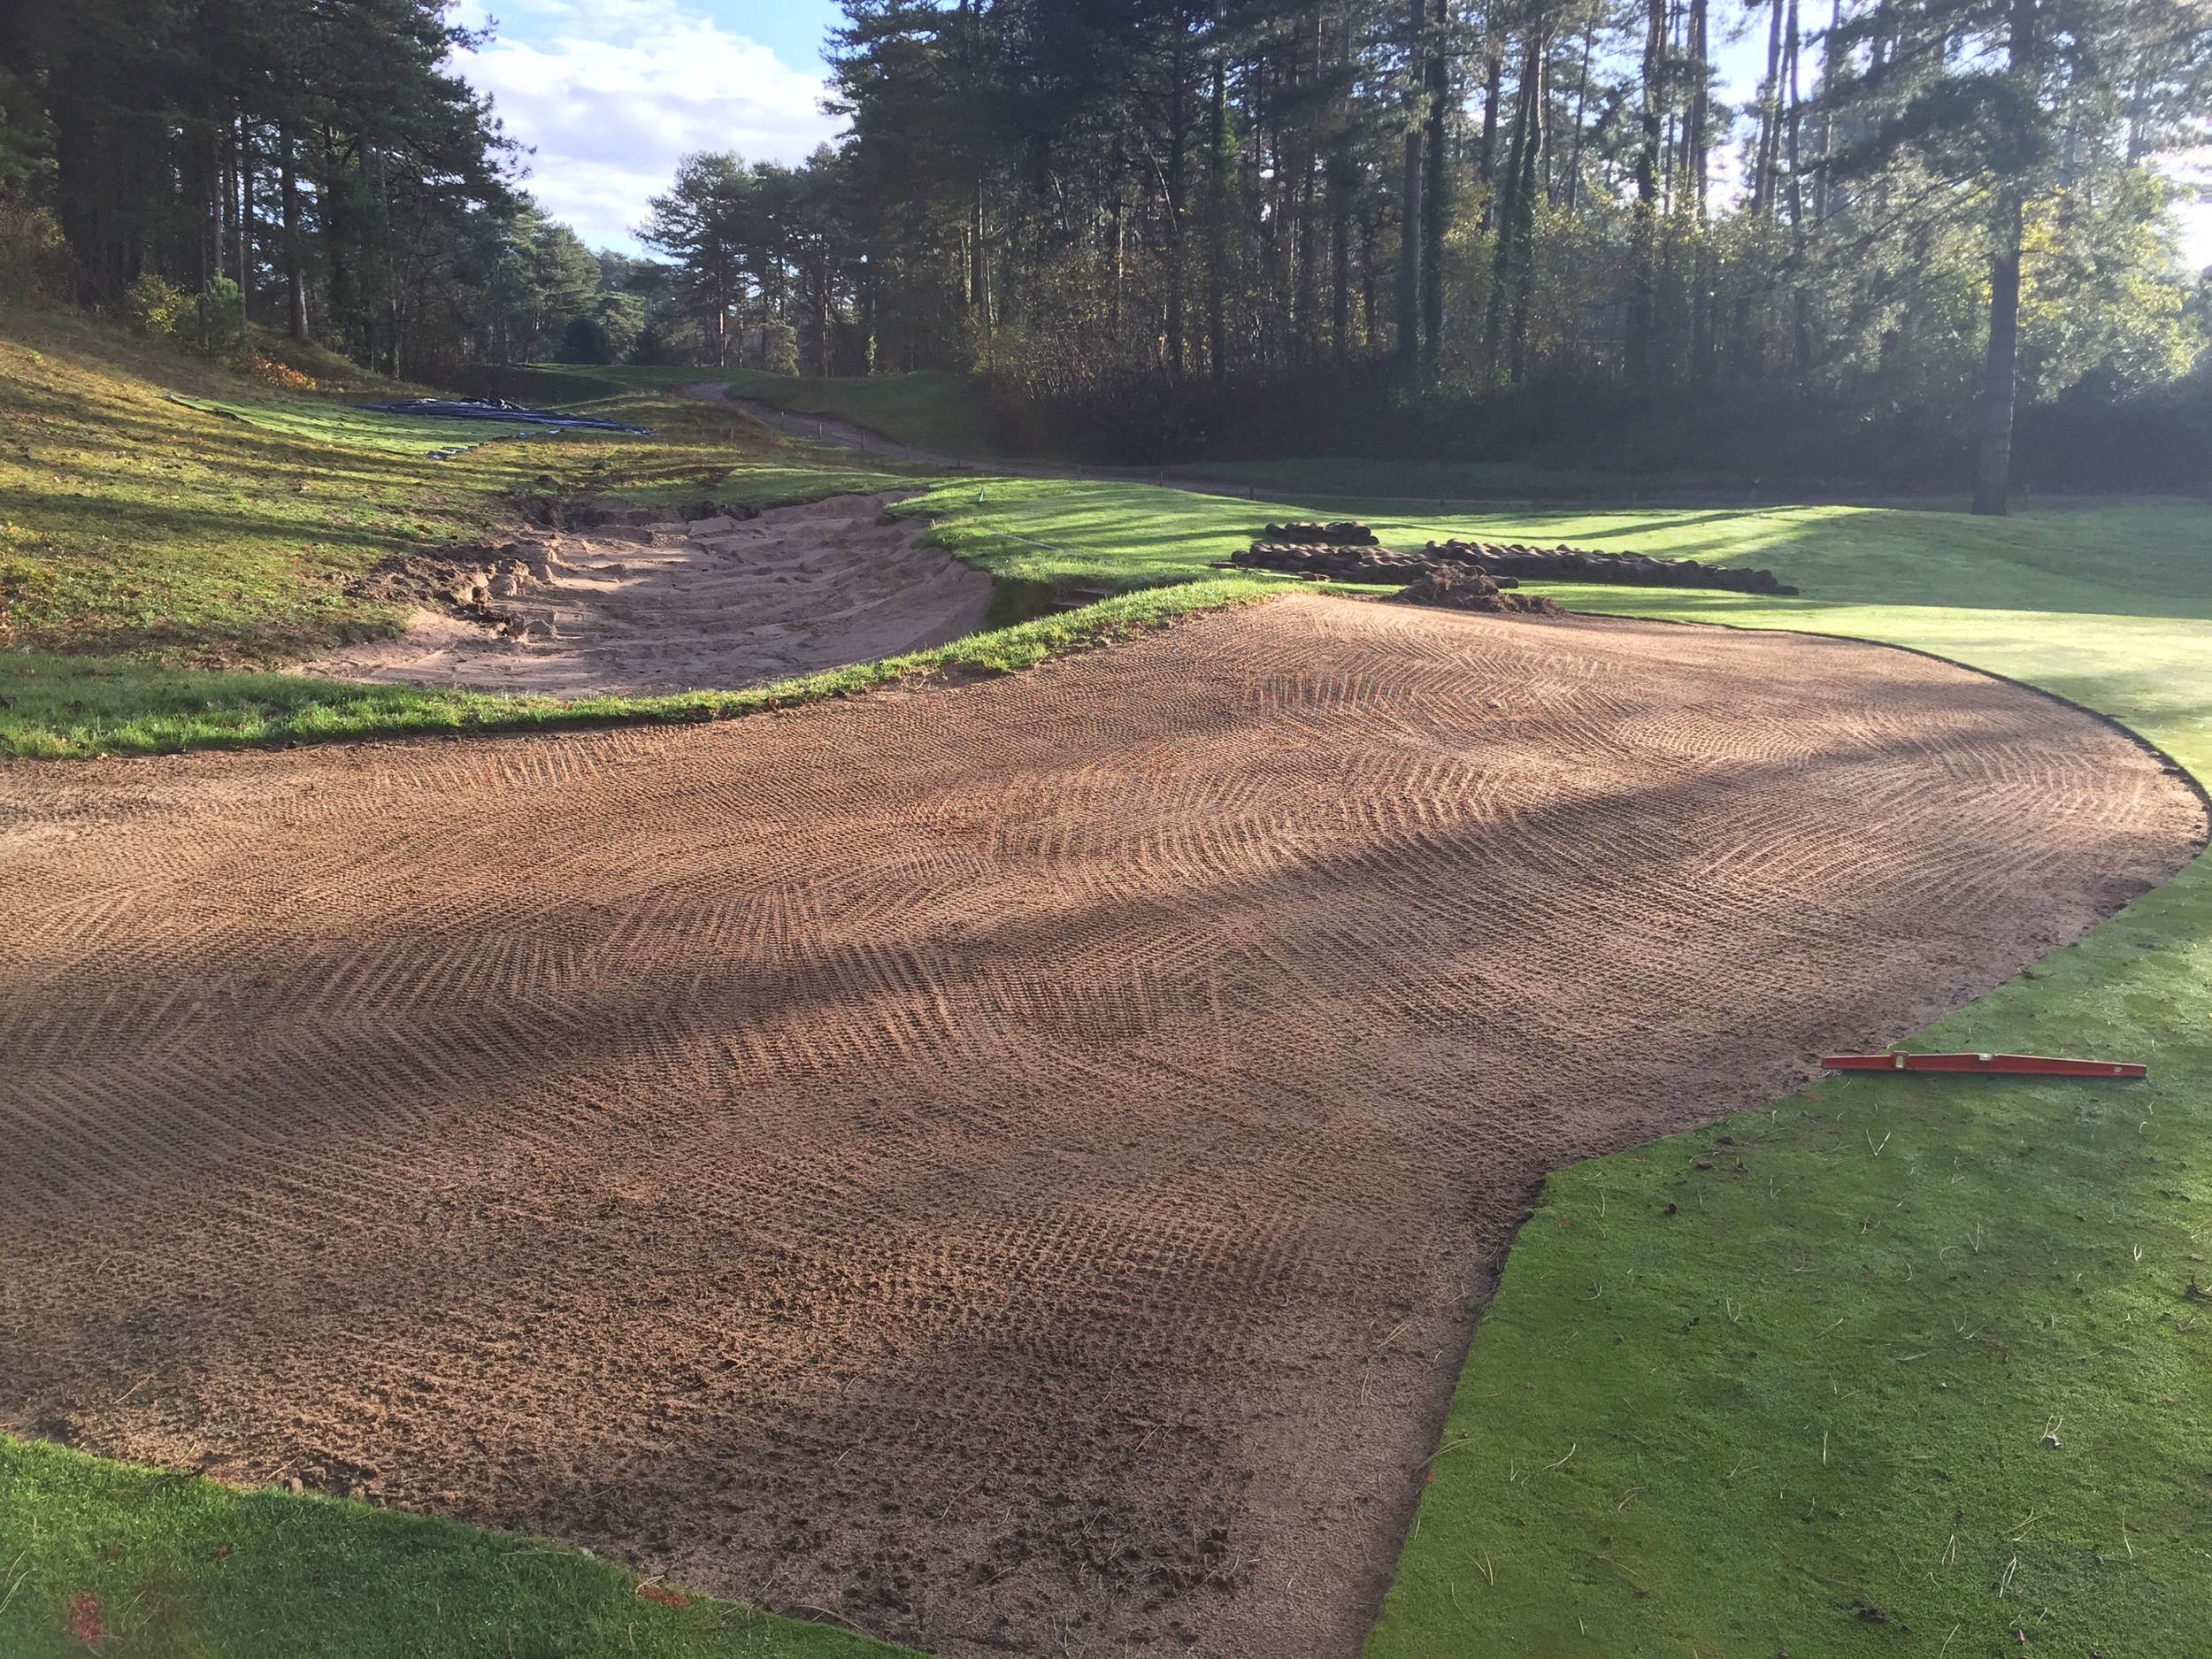 This is a softening and corner expansion of the front right corner of the short par 3 5th green at Les Pins. The bunker edge was simply collapsed using excavation underneath, meaning there was no need to rebuilt that edge in the soft blown-in beach sand.